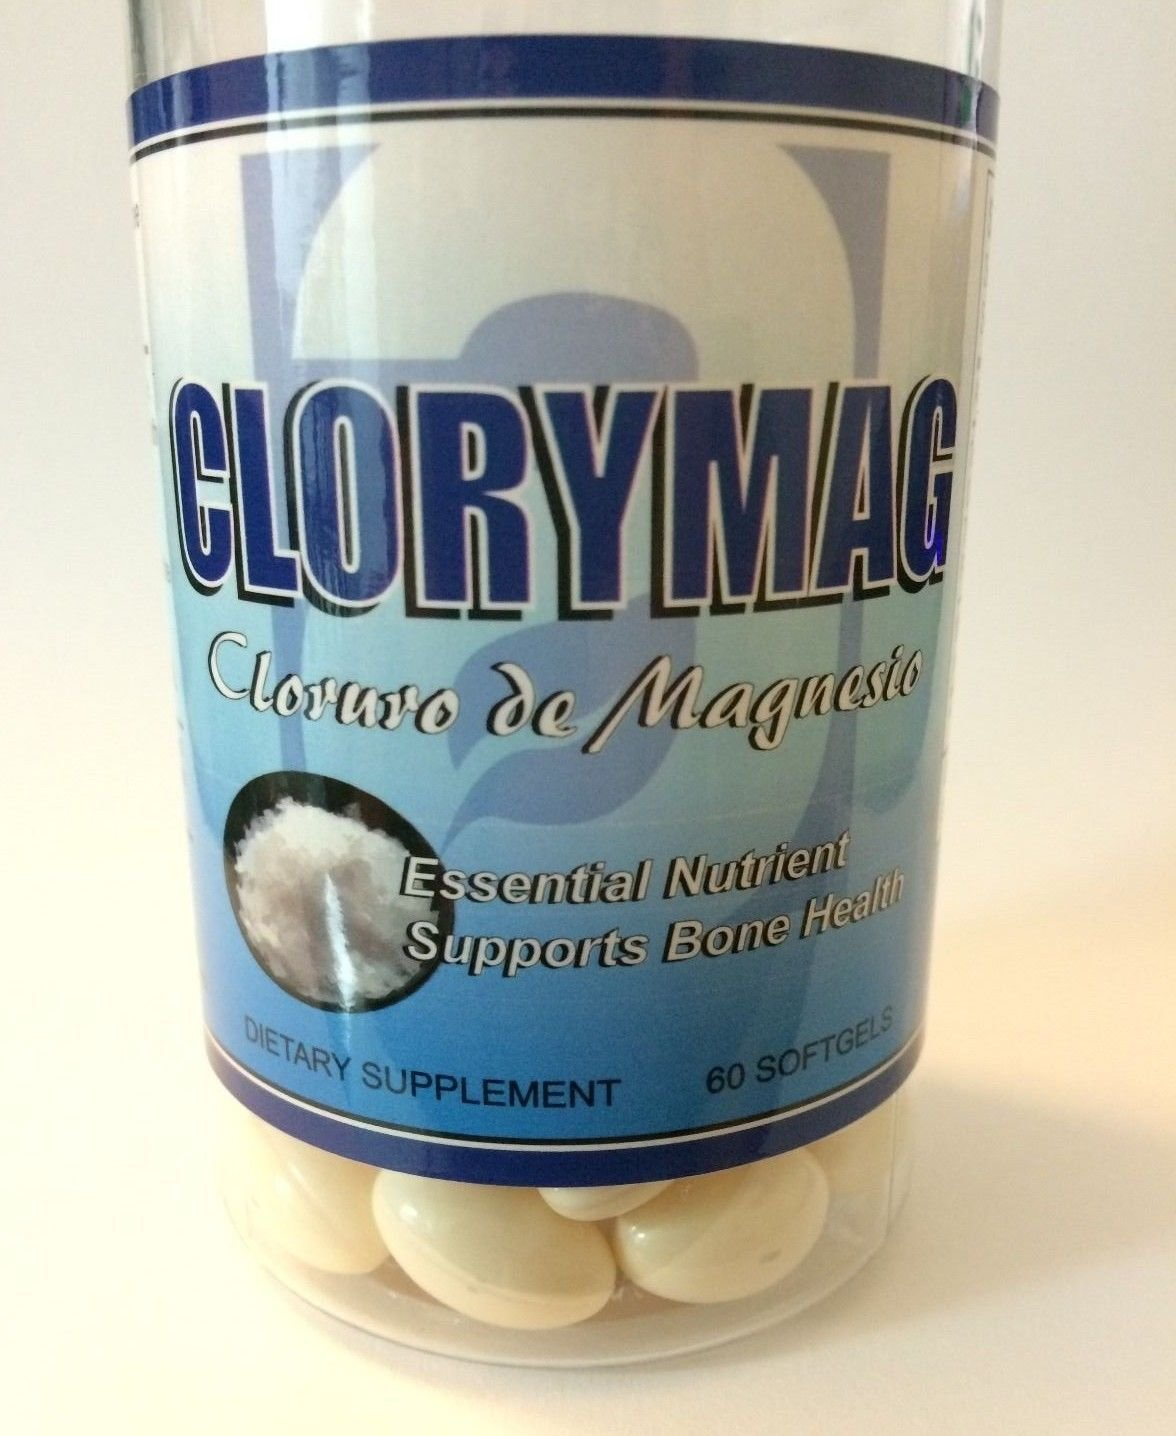 Amazon.com: Clorimag Cloruro de Magnesio (520 mg) Support Bone Health Salud Huesos Magnesium: Health & Personal Care